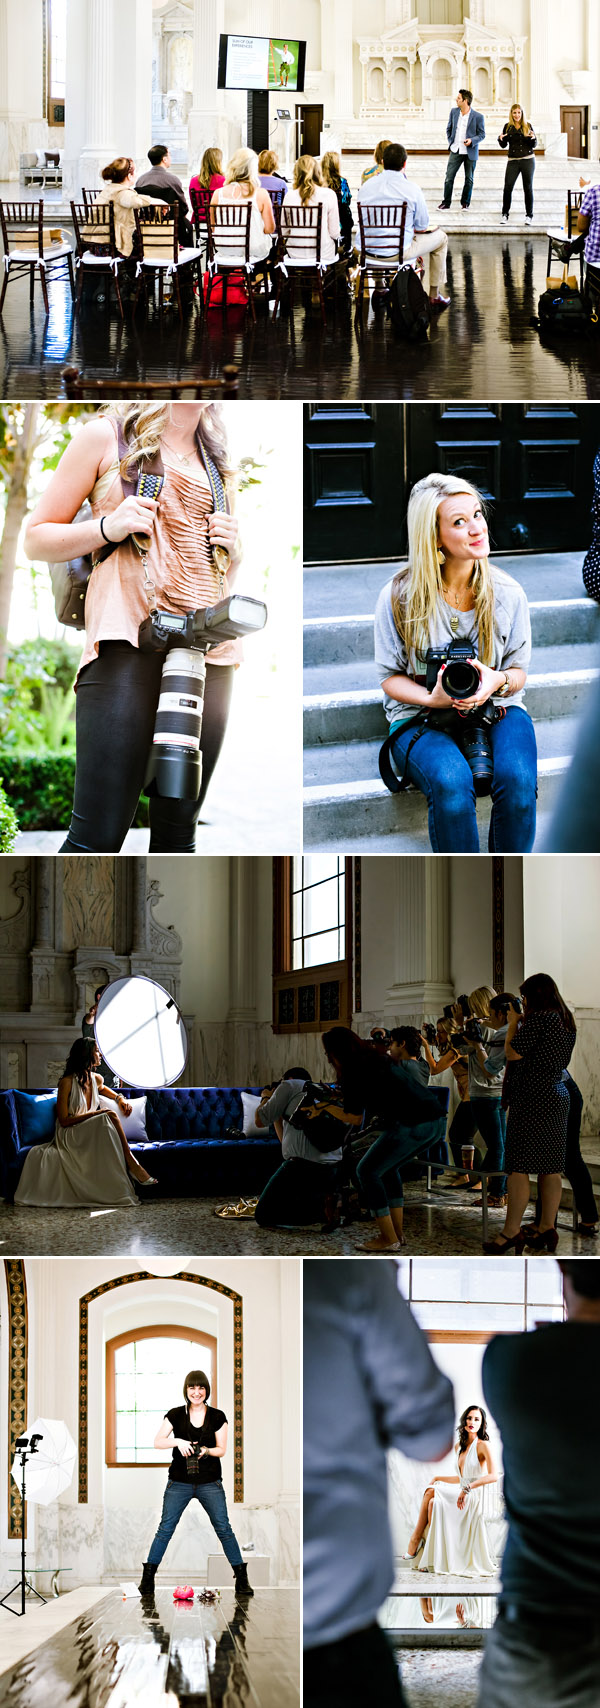 behind the scenes at the Junebug Weddings FASHION FORWARD Wedding Photography Workshop - photos by Chelsea Patricia